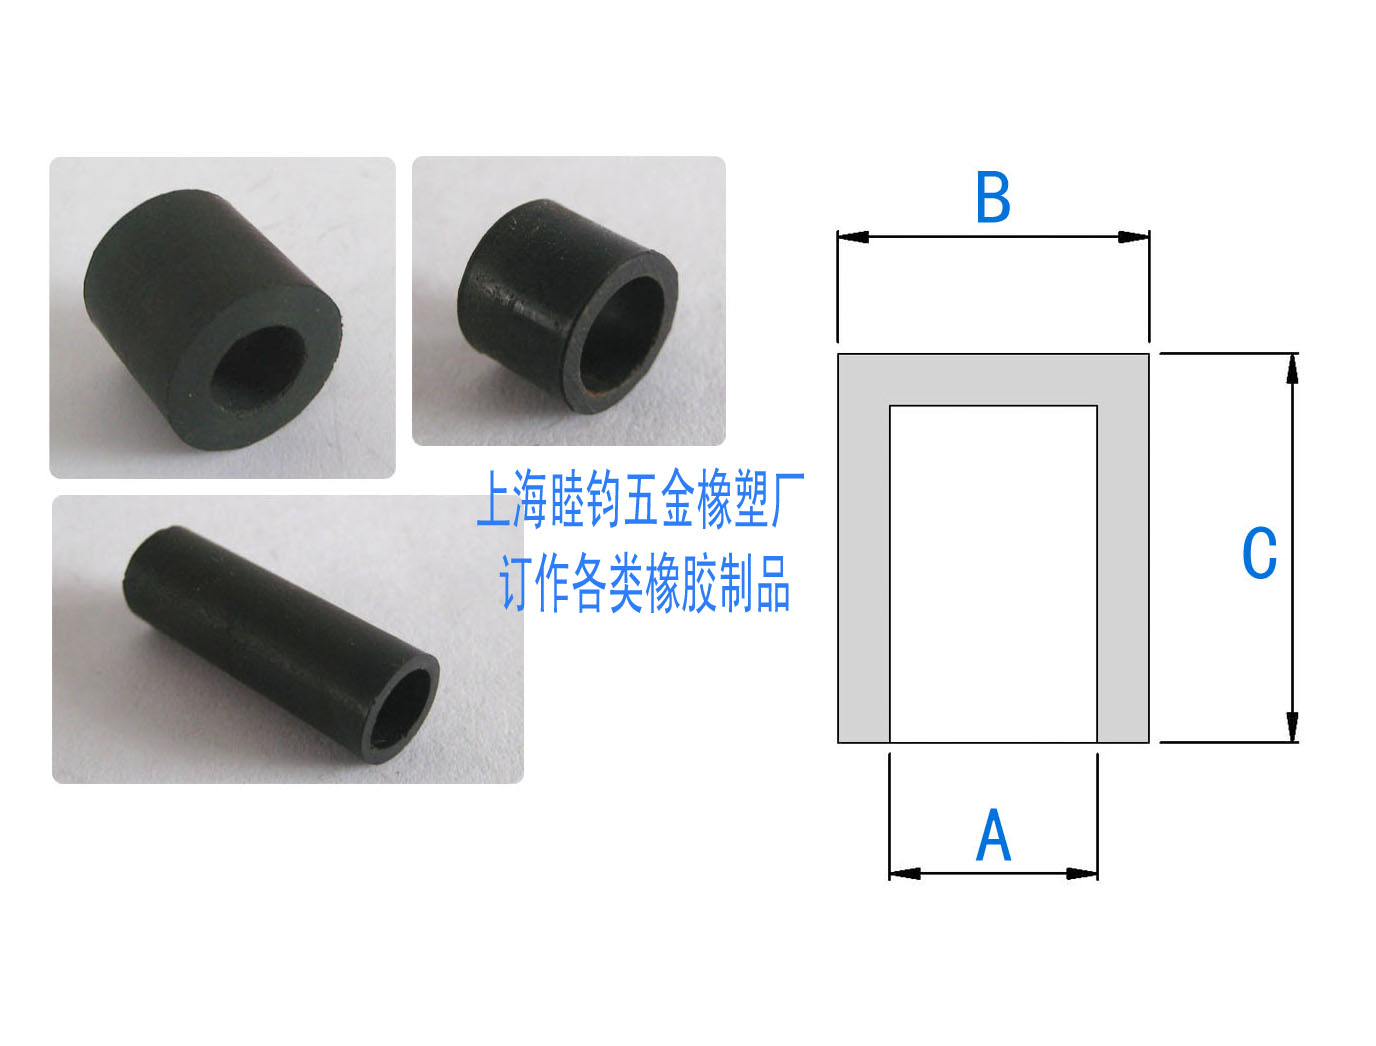 High temperature resistant NBR silicone oil resistant rubber sleeve cap, outer thread protection sleeve, cap, jacket, plug